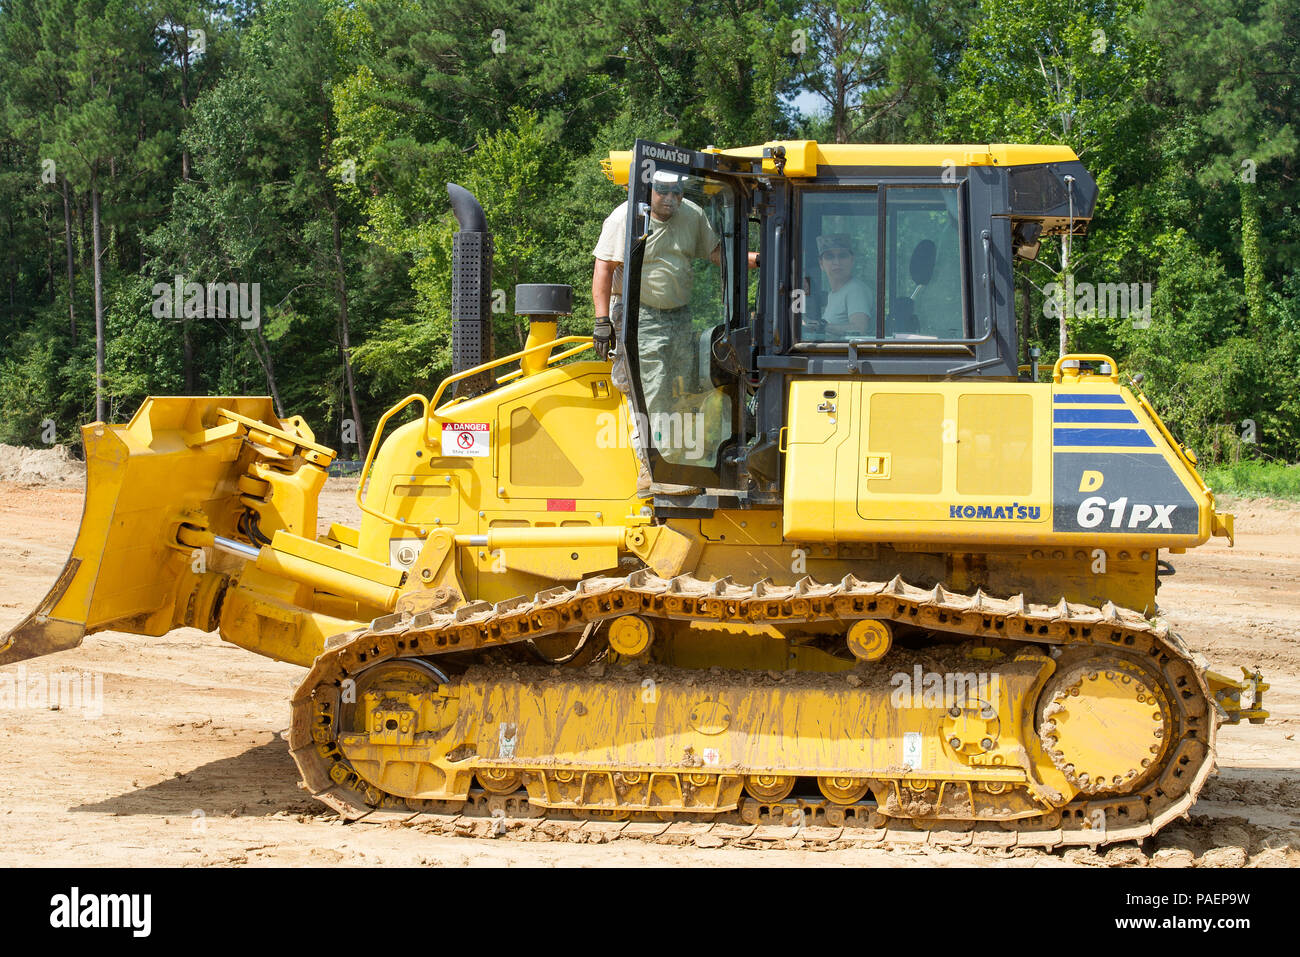 Mtk Stock Photos & Mtk Stock Images - Alamy